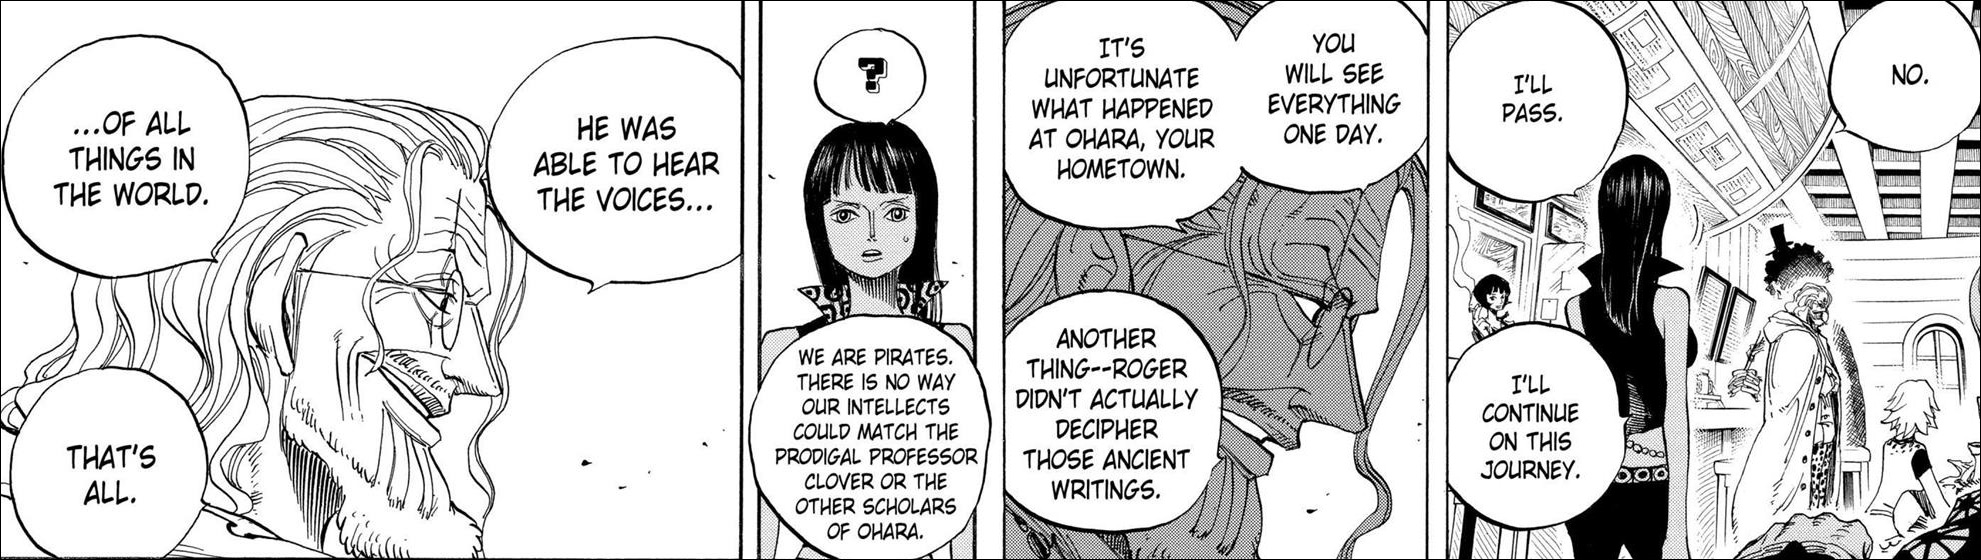 One Piece chapter 507 - the importance of Robin